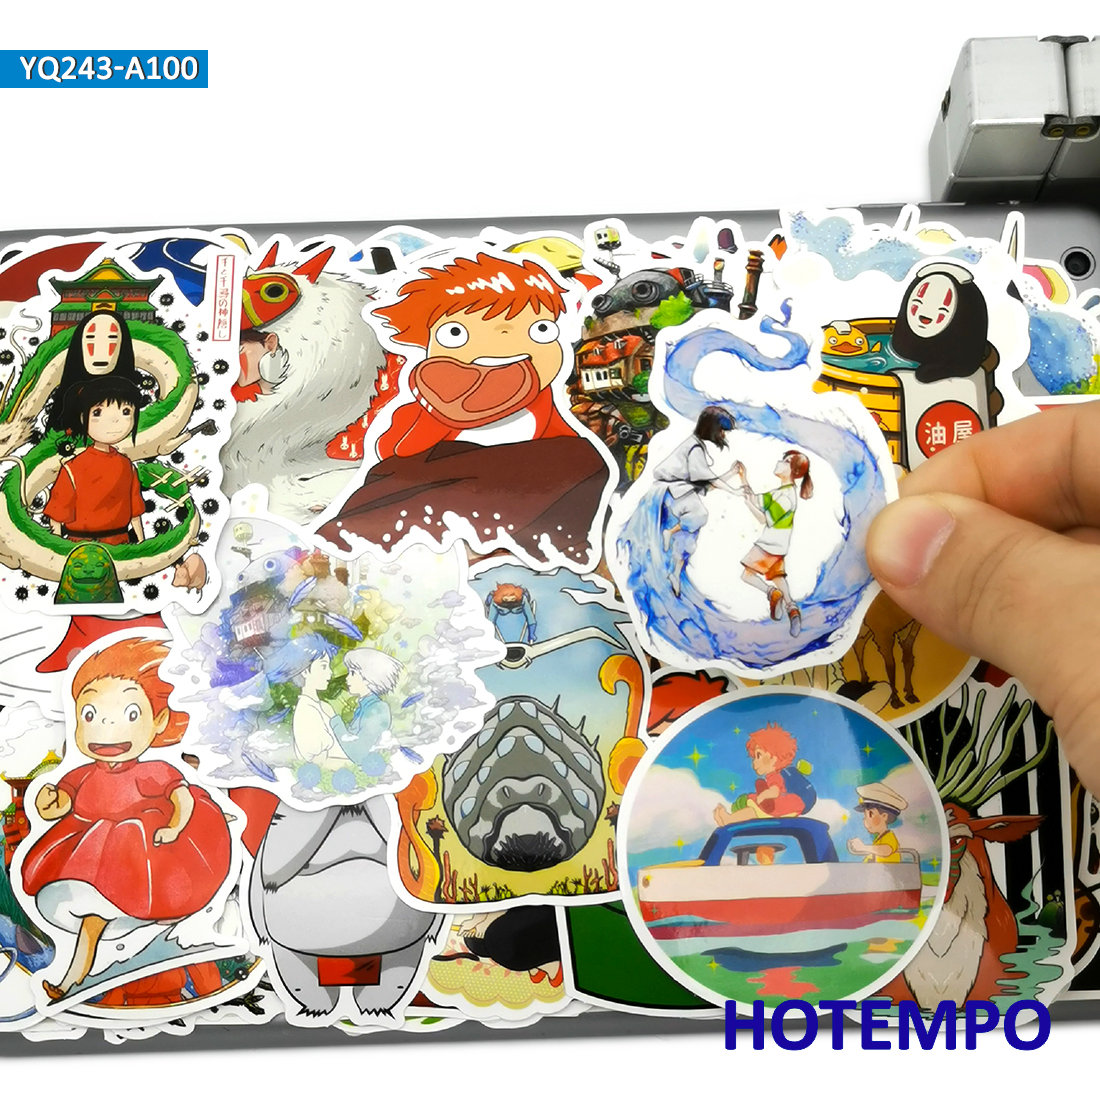 100pcs Manga Miyazaki Hayao Classic Cute Anime Movie Stickers Toy For Kid Mobile Phone Laptop Luggage Skateboard Cartoon Sticker